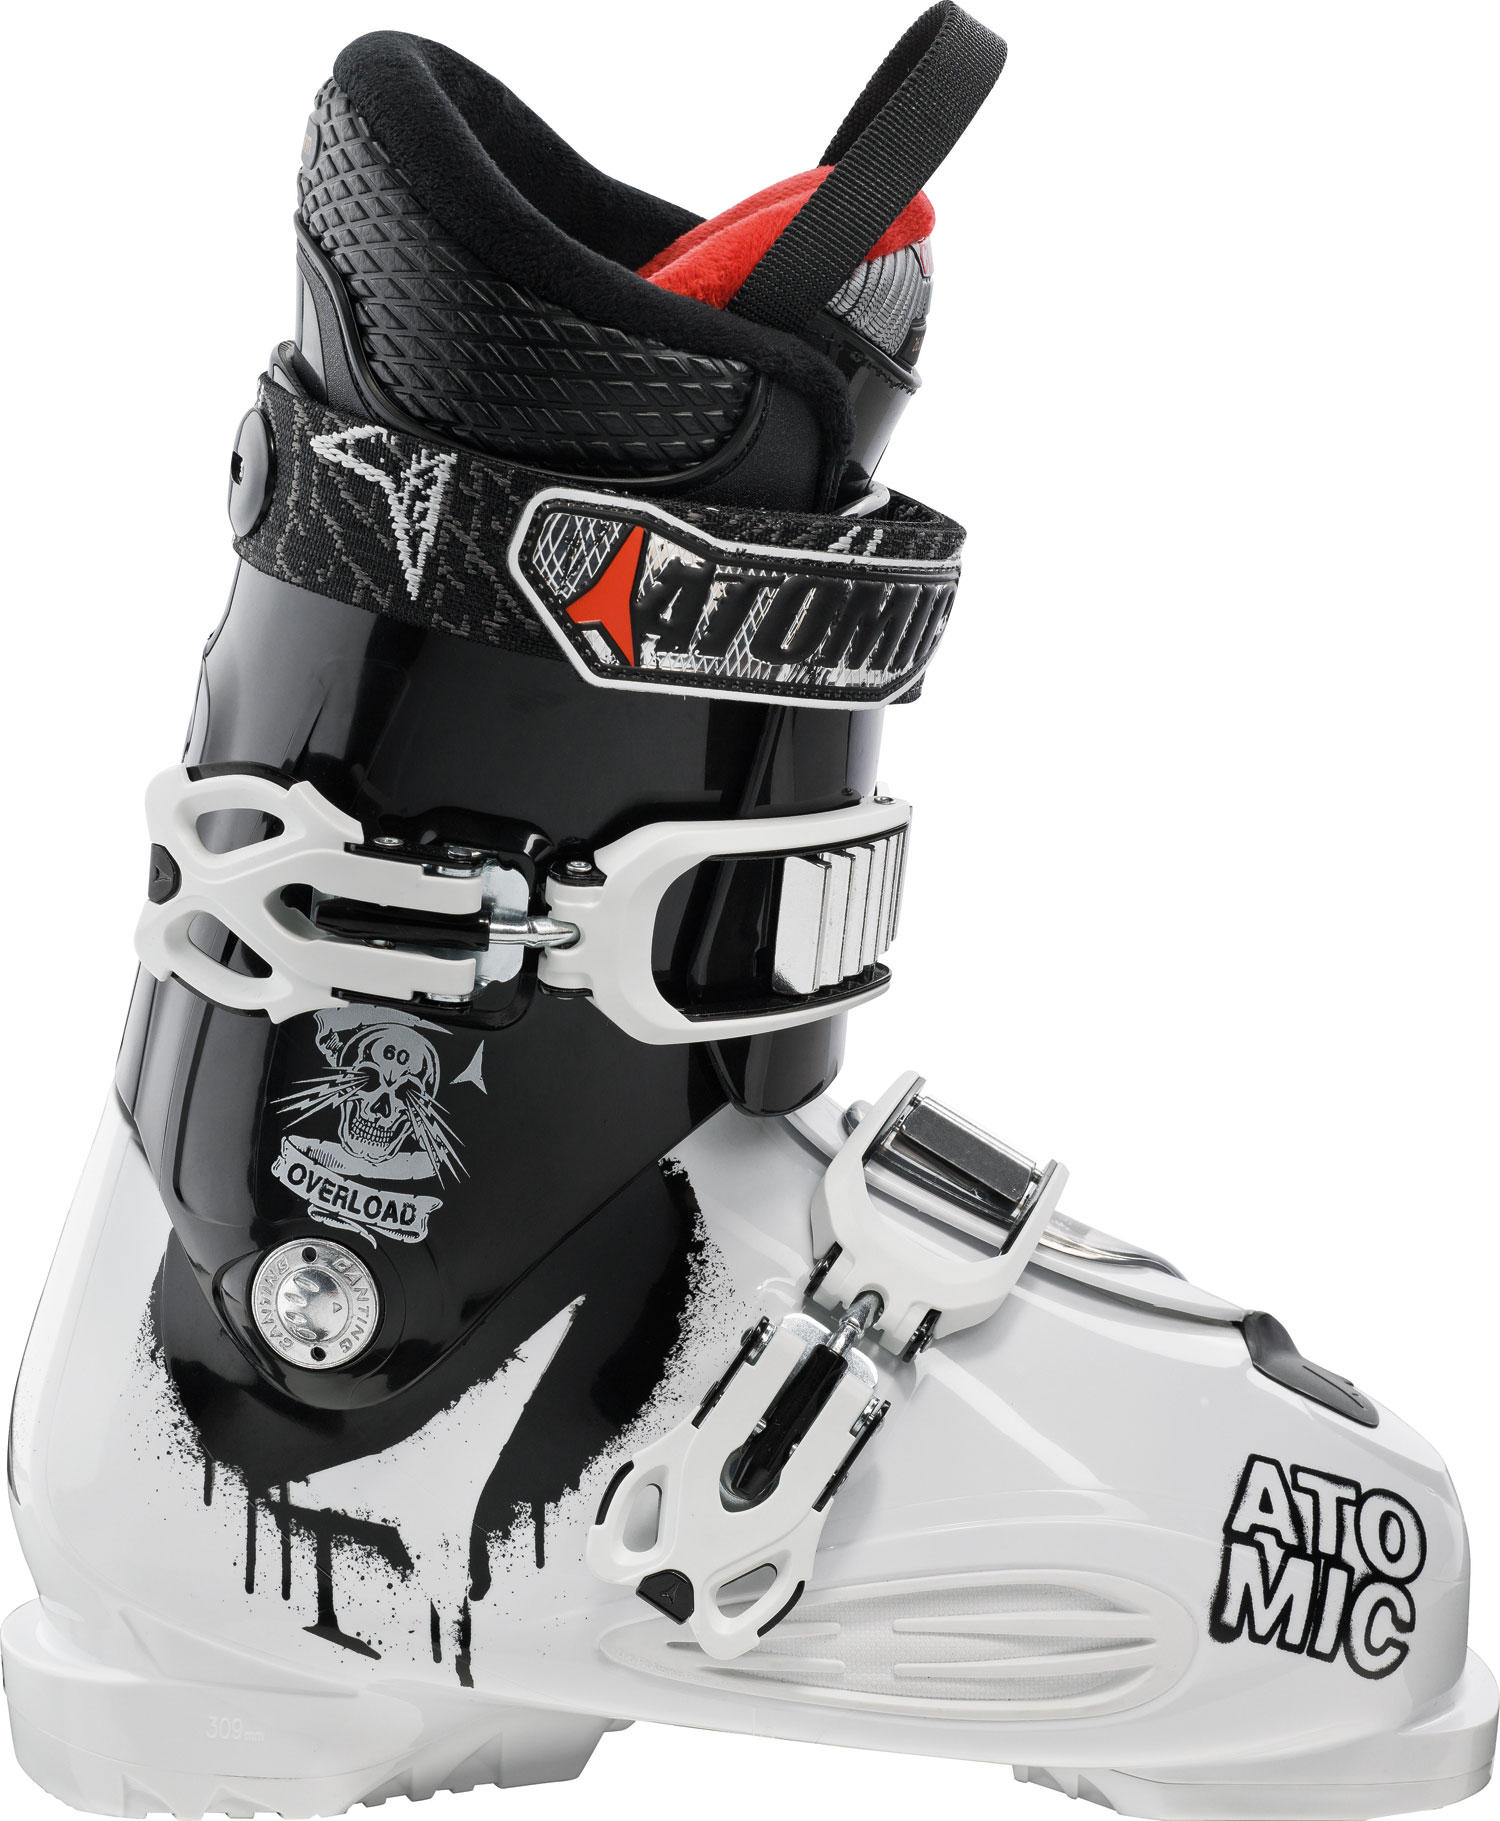 Ski Key Features of the Atomic Overload 60 Ski Boots: 60 Flex Mega PC buckle 35mm strap ASY Comfort Liner - $174.95